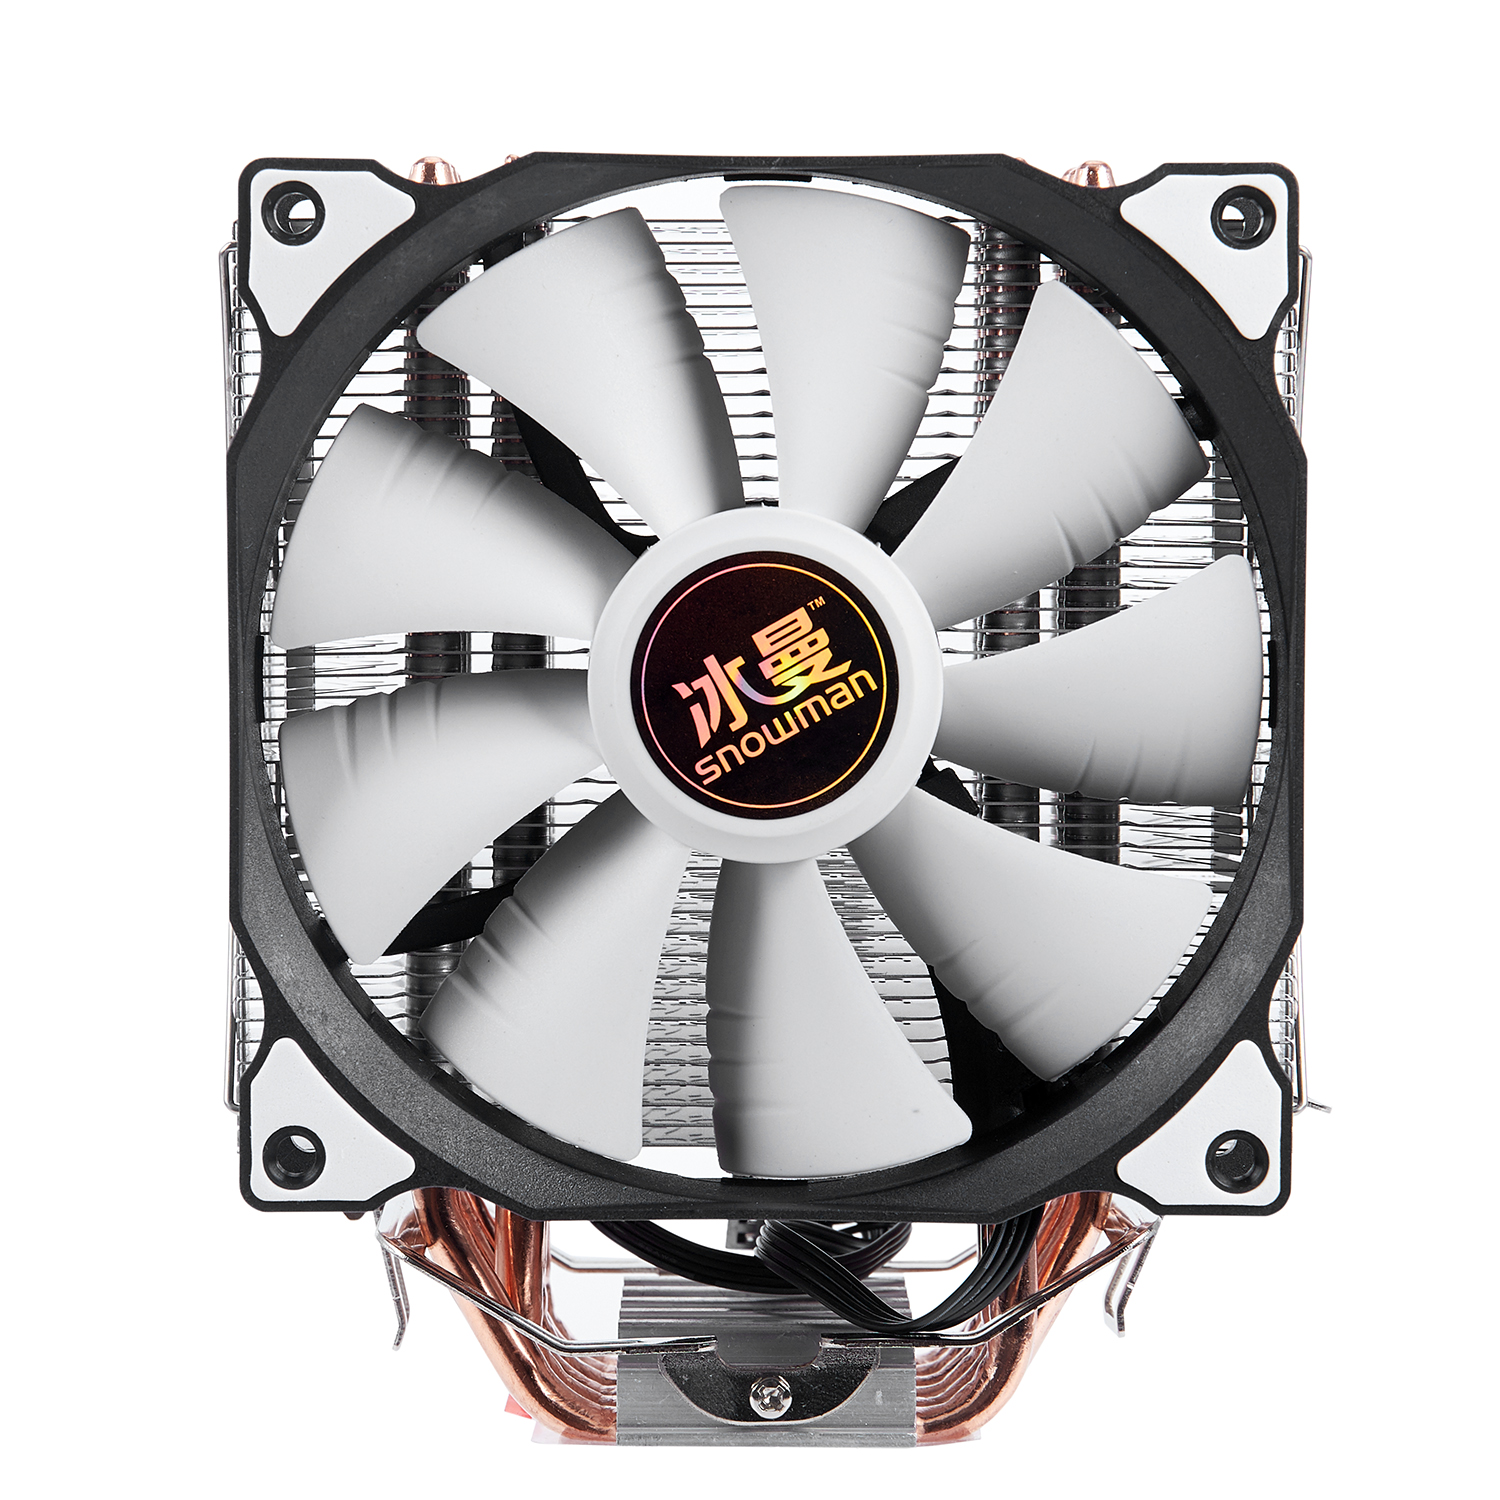 SNOWMAN 4PIN CPU cooler 6 heatpipe Single fan cooling 12cm fan LGA775 1151 115x 1366 support Intel AMD image